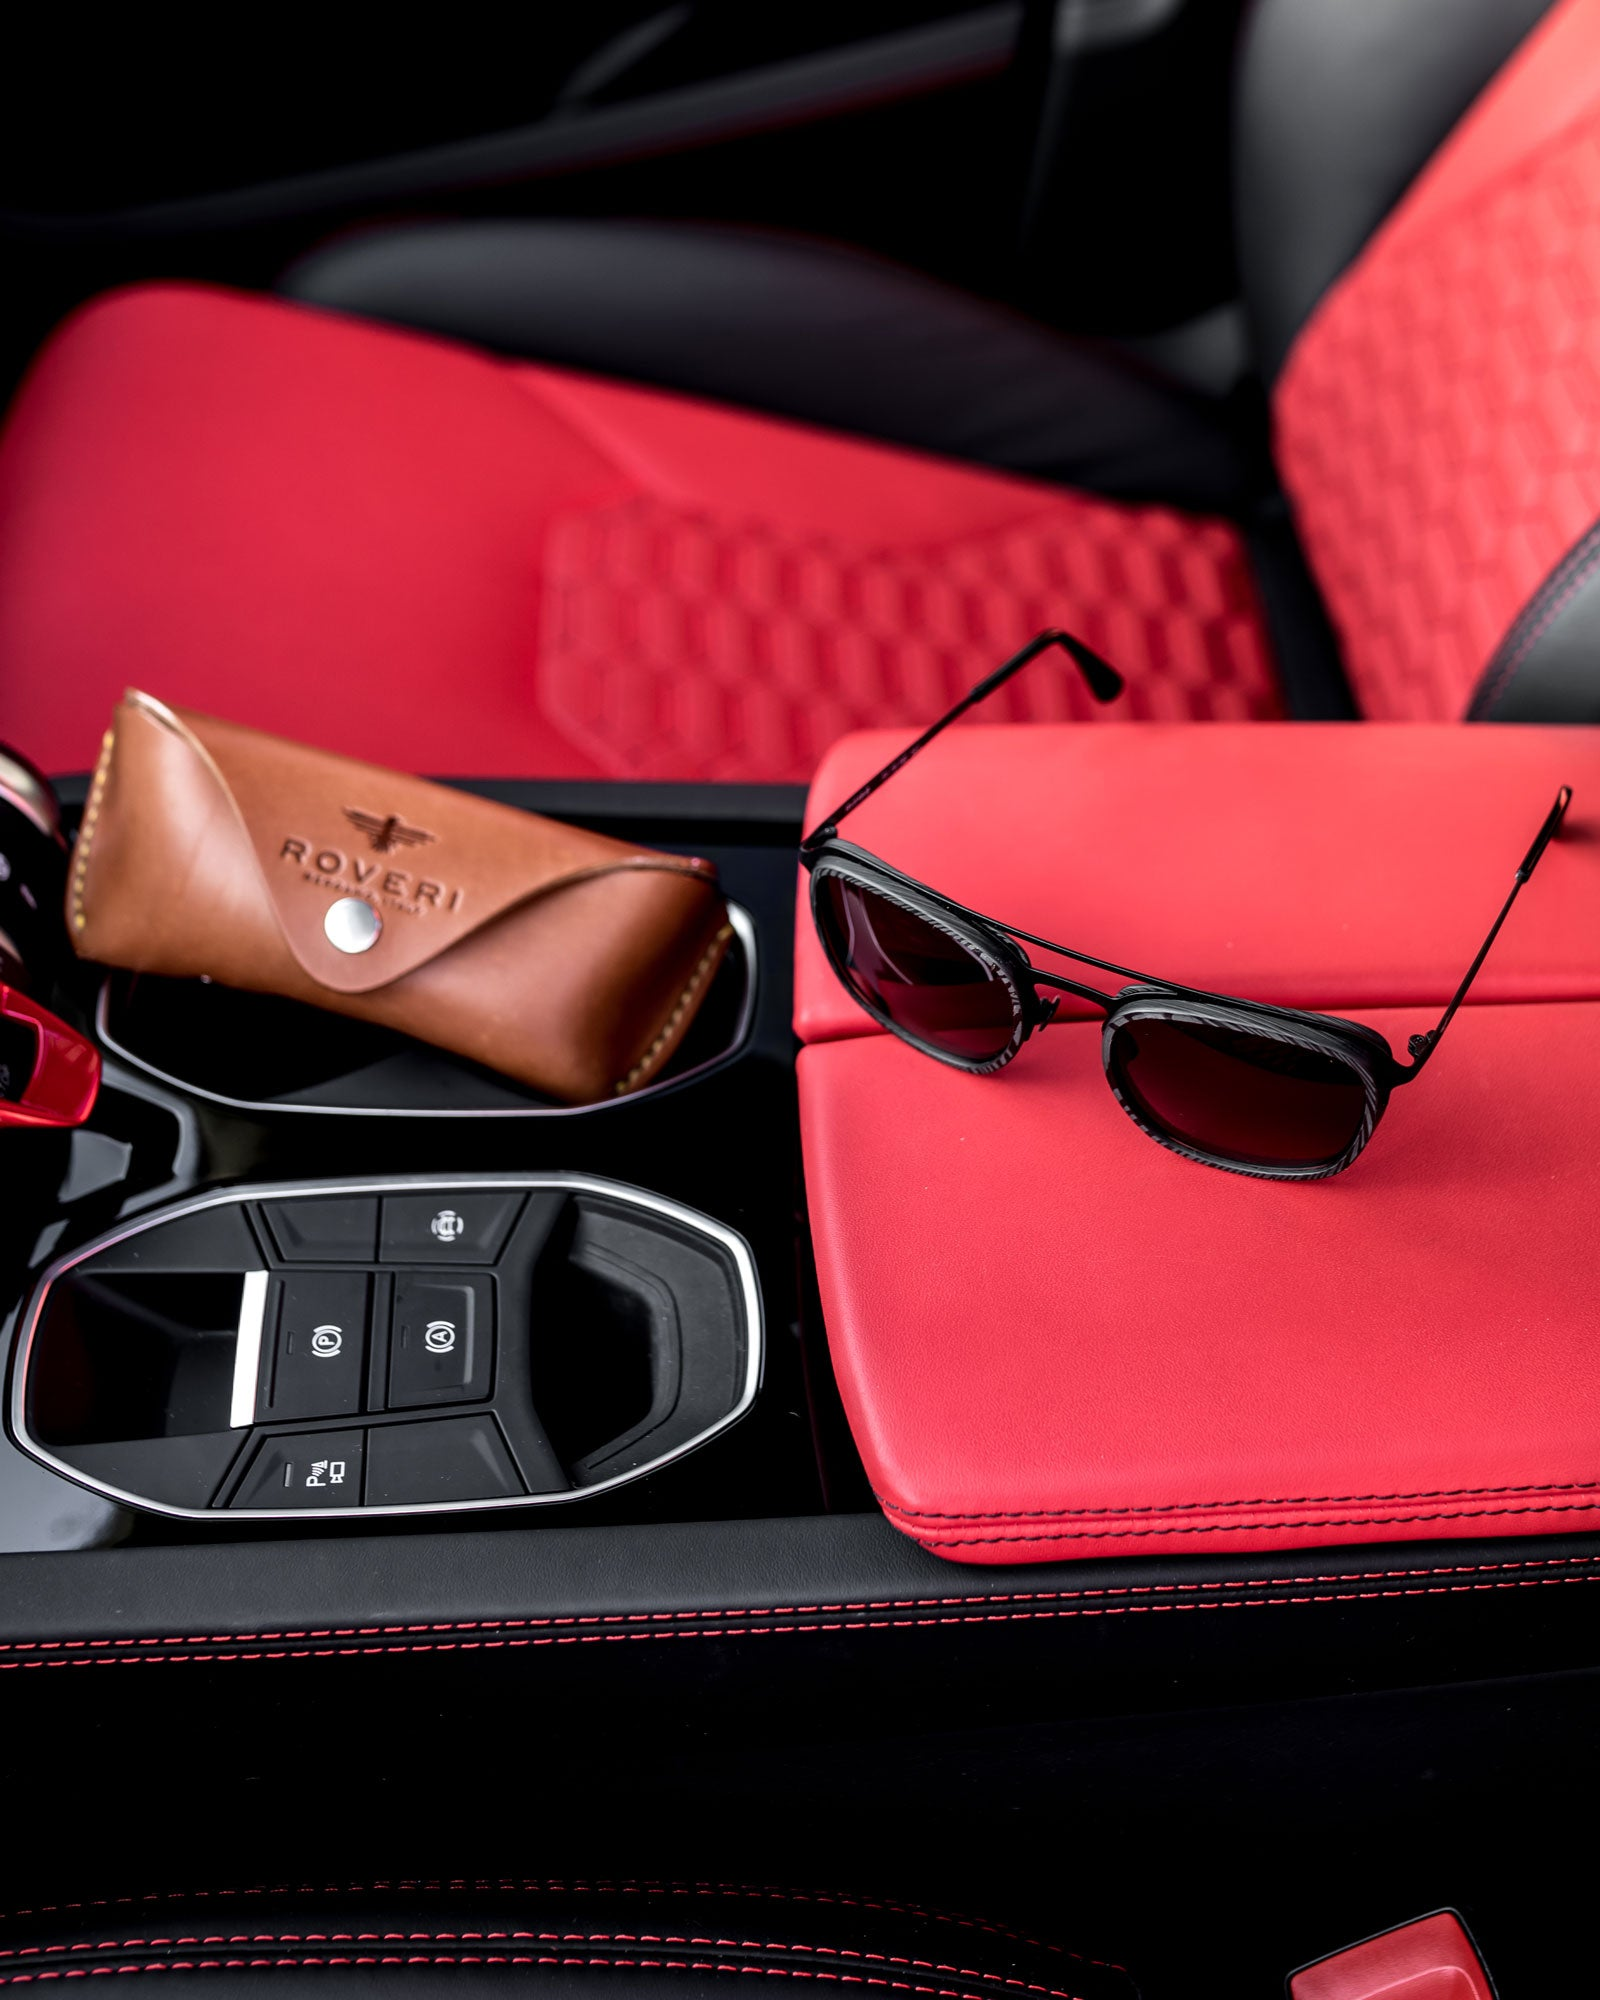 Roveri Eyewear RV018B with Lamborghini Urus Red interiors and leather case.